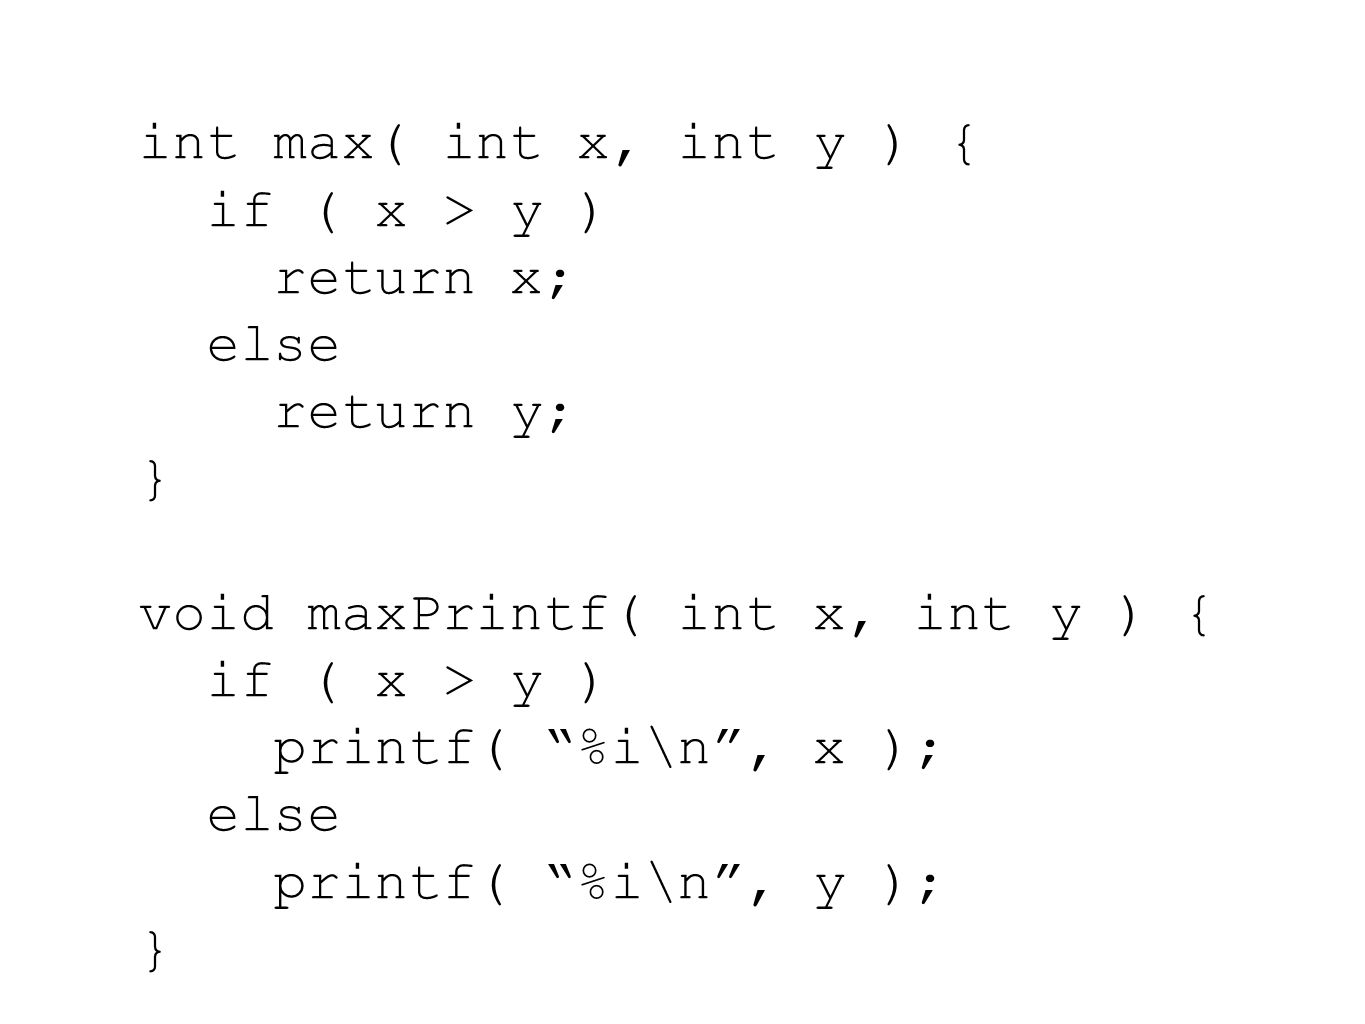 int max( int x, int y ) { if ( x > y ) return x; else return y; } void maxPrintf( int x, int y ) { if ( x > y ) printf( %i\n , x ); else printf( %i\n , y ); }